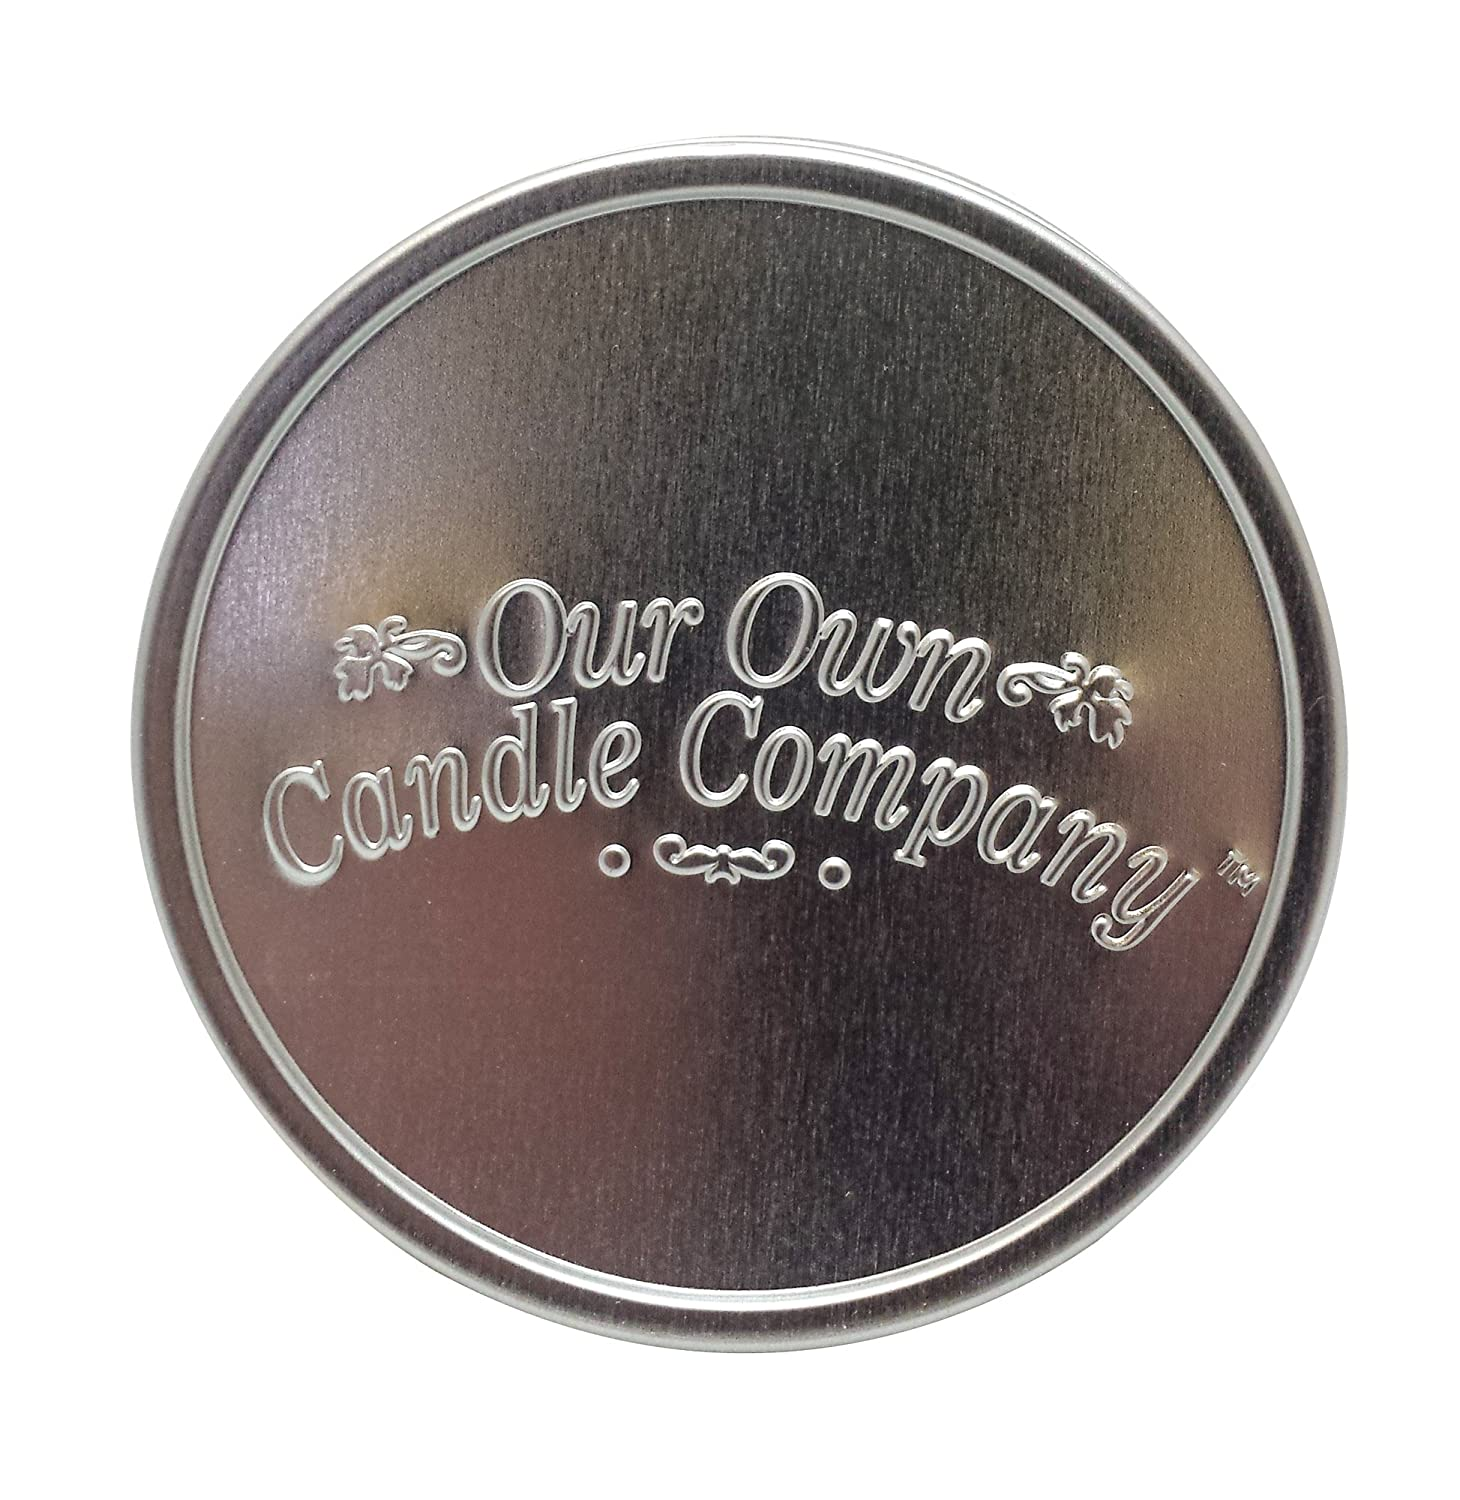 Our Own Candle Company Soy Wax Aromatherapy Candle Simply Spearmint 6.5 Ounce 3 Pack